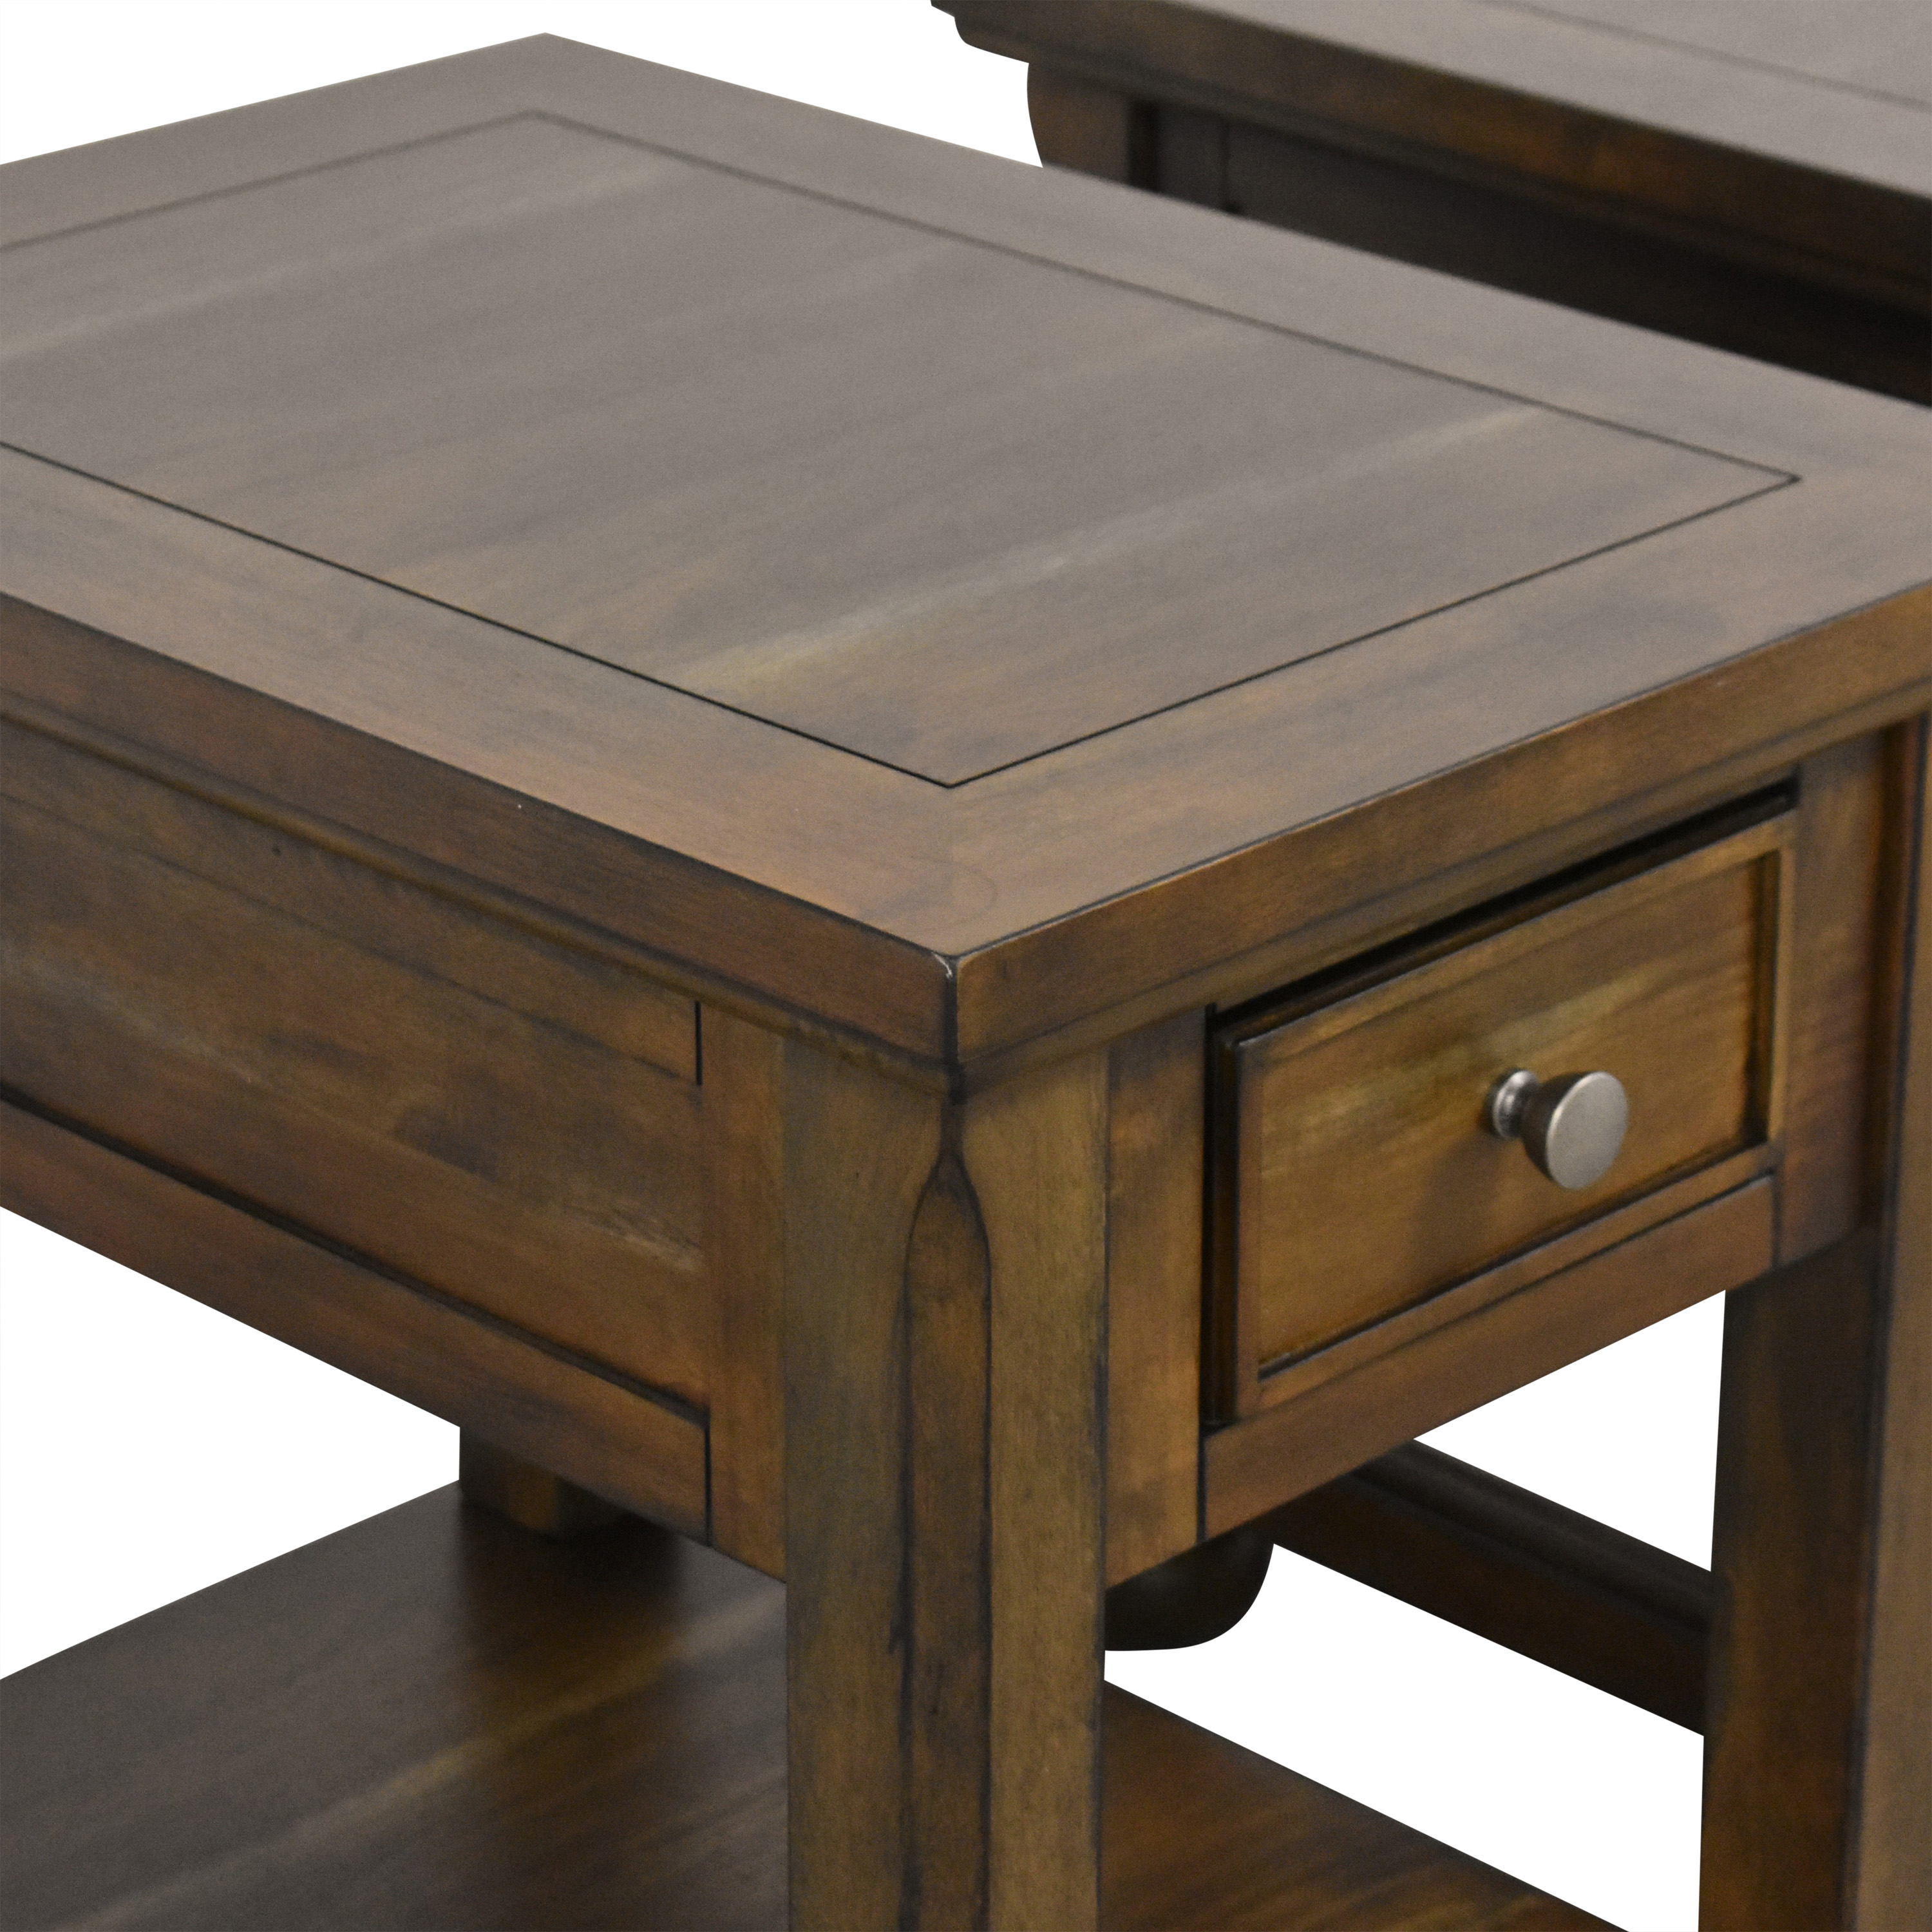 Ashley Furniture Porter Chairside End Tables / Tables